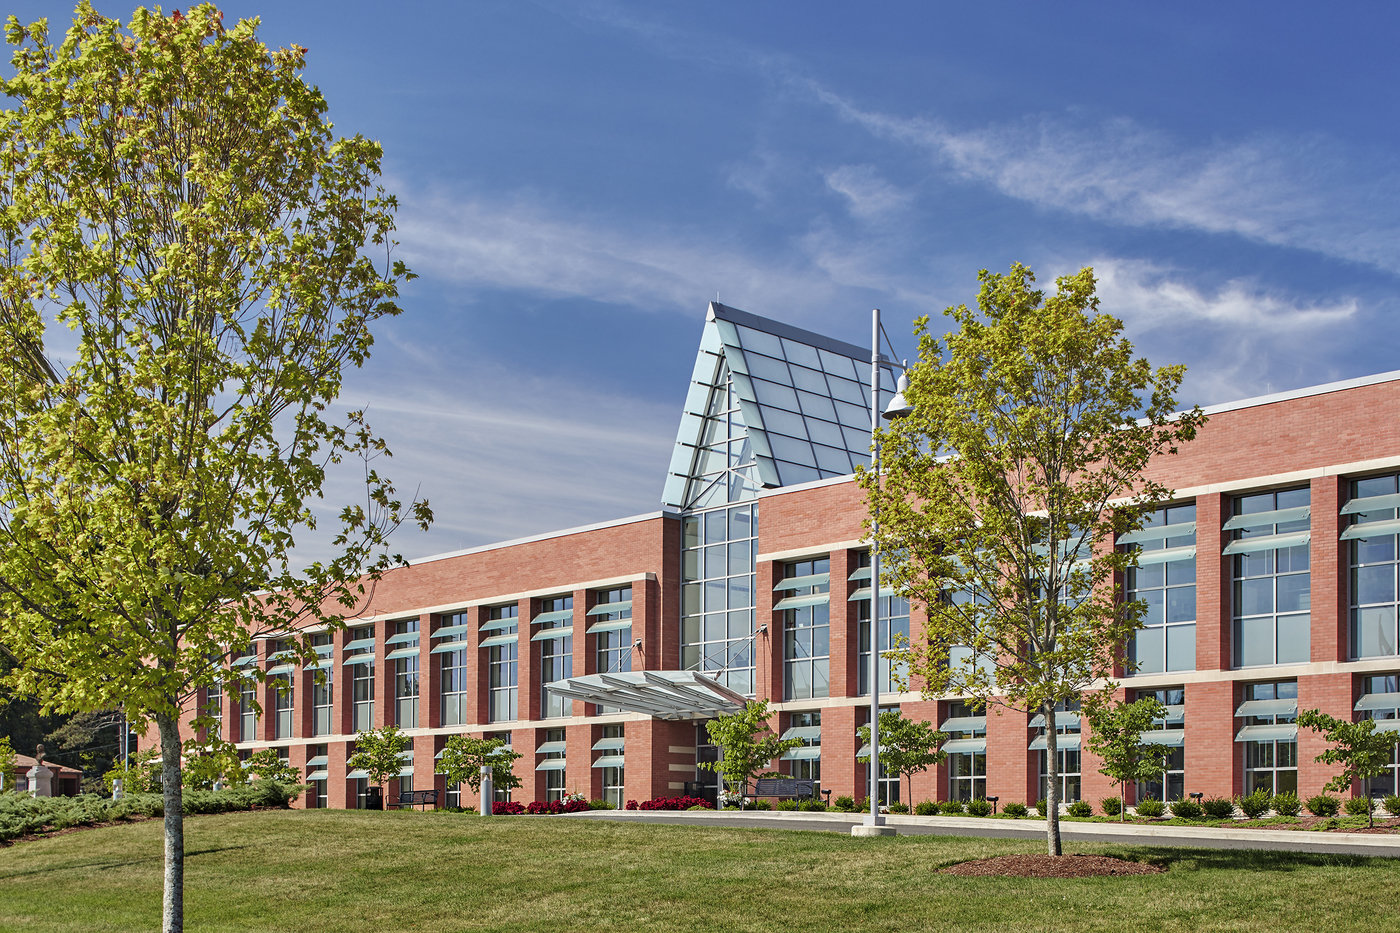 1 tskp american school deaf gallaudet clerc education center exterior overview2 1400 xxx q85